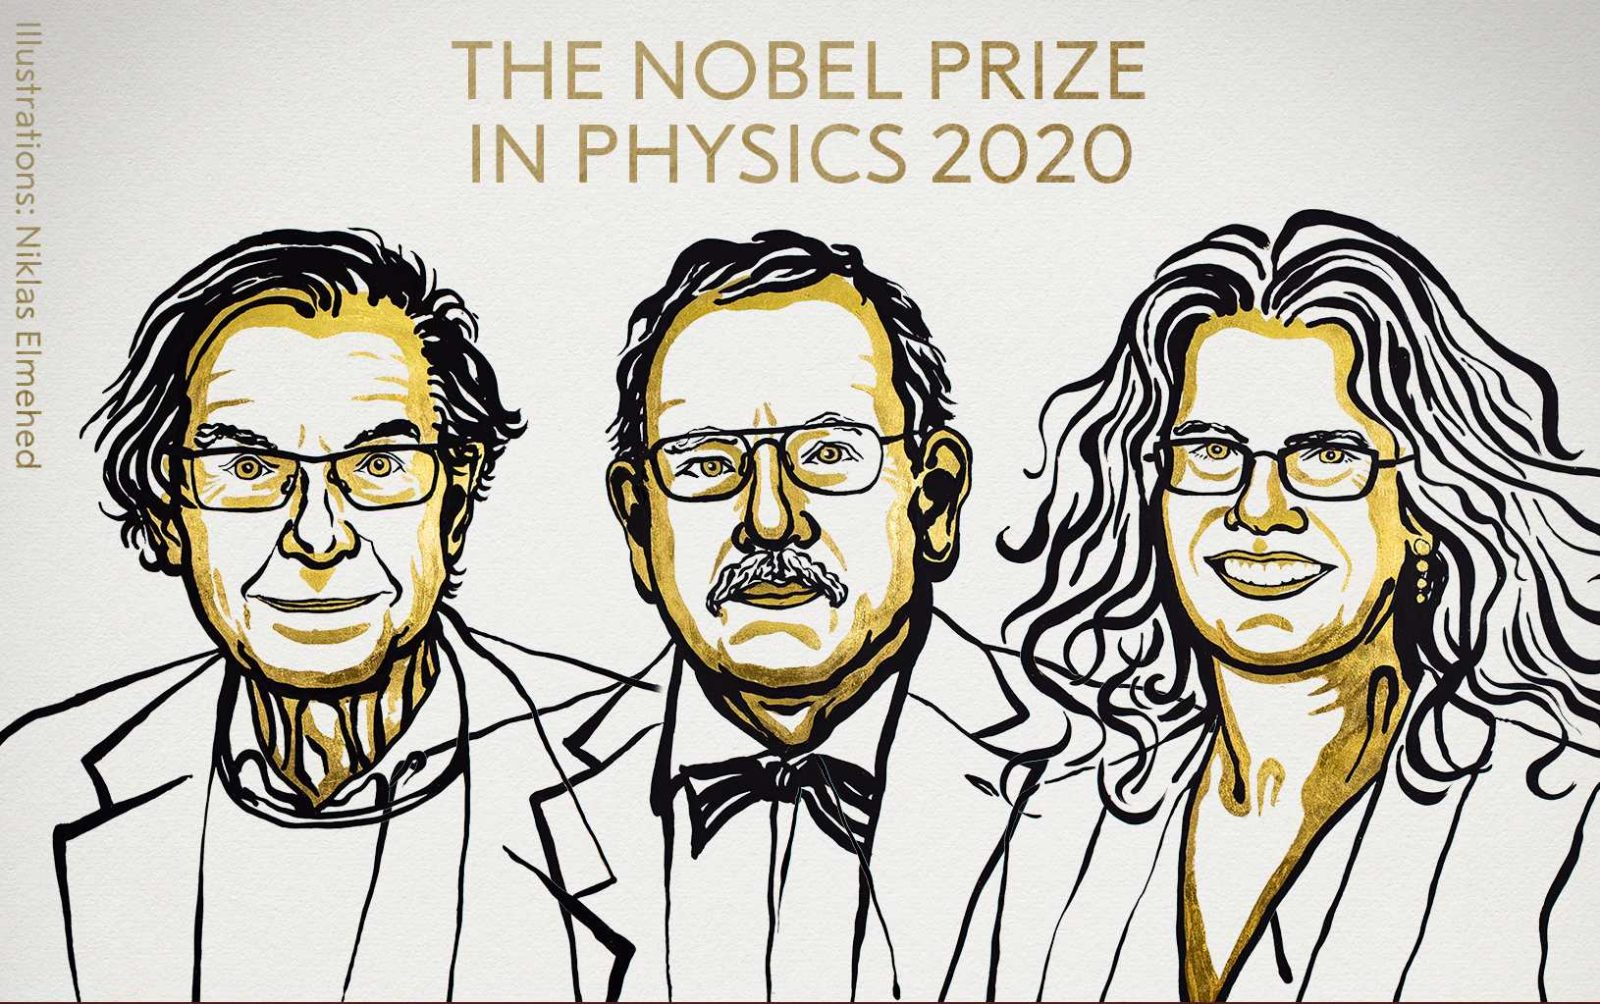 Black hole discoveries earn three scientists a Nobel Prize in Physics